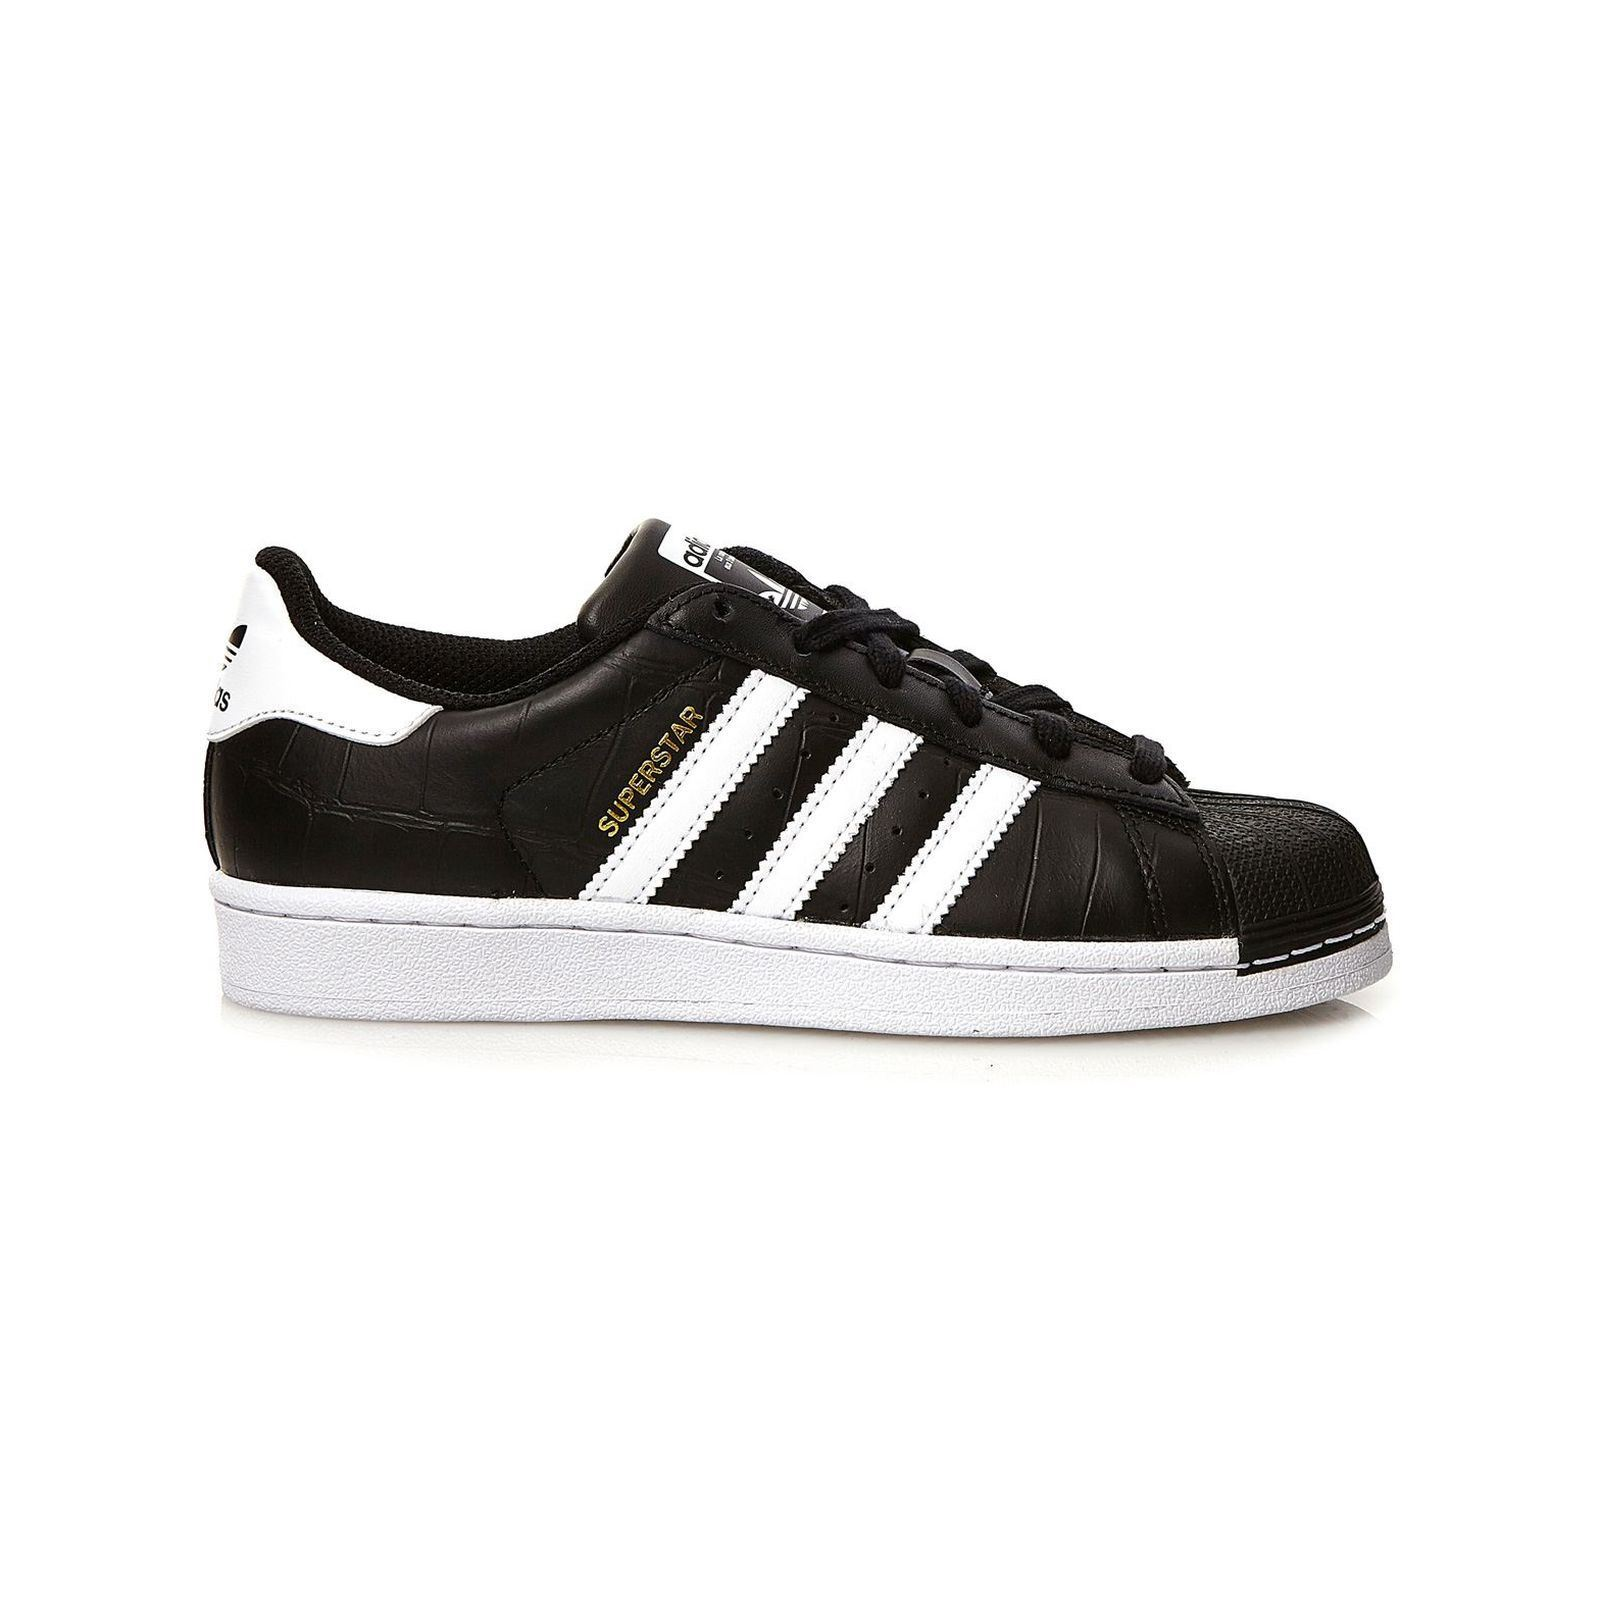 ADIDAS ORIGINALS Superstar - Baskets avec cuir - noir